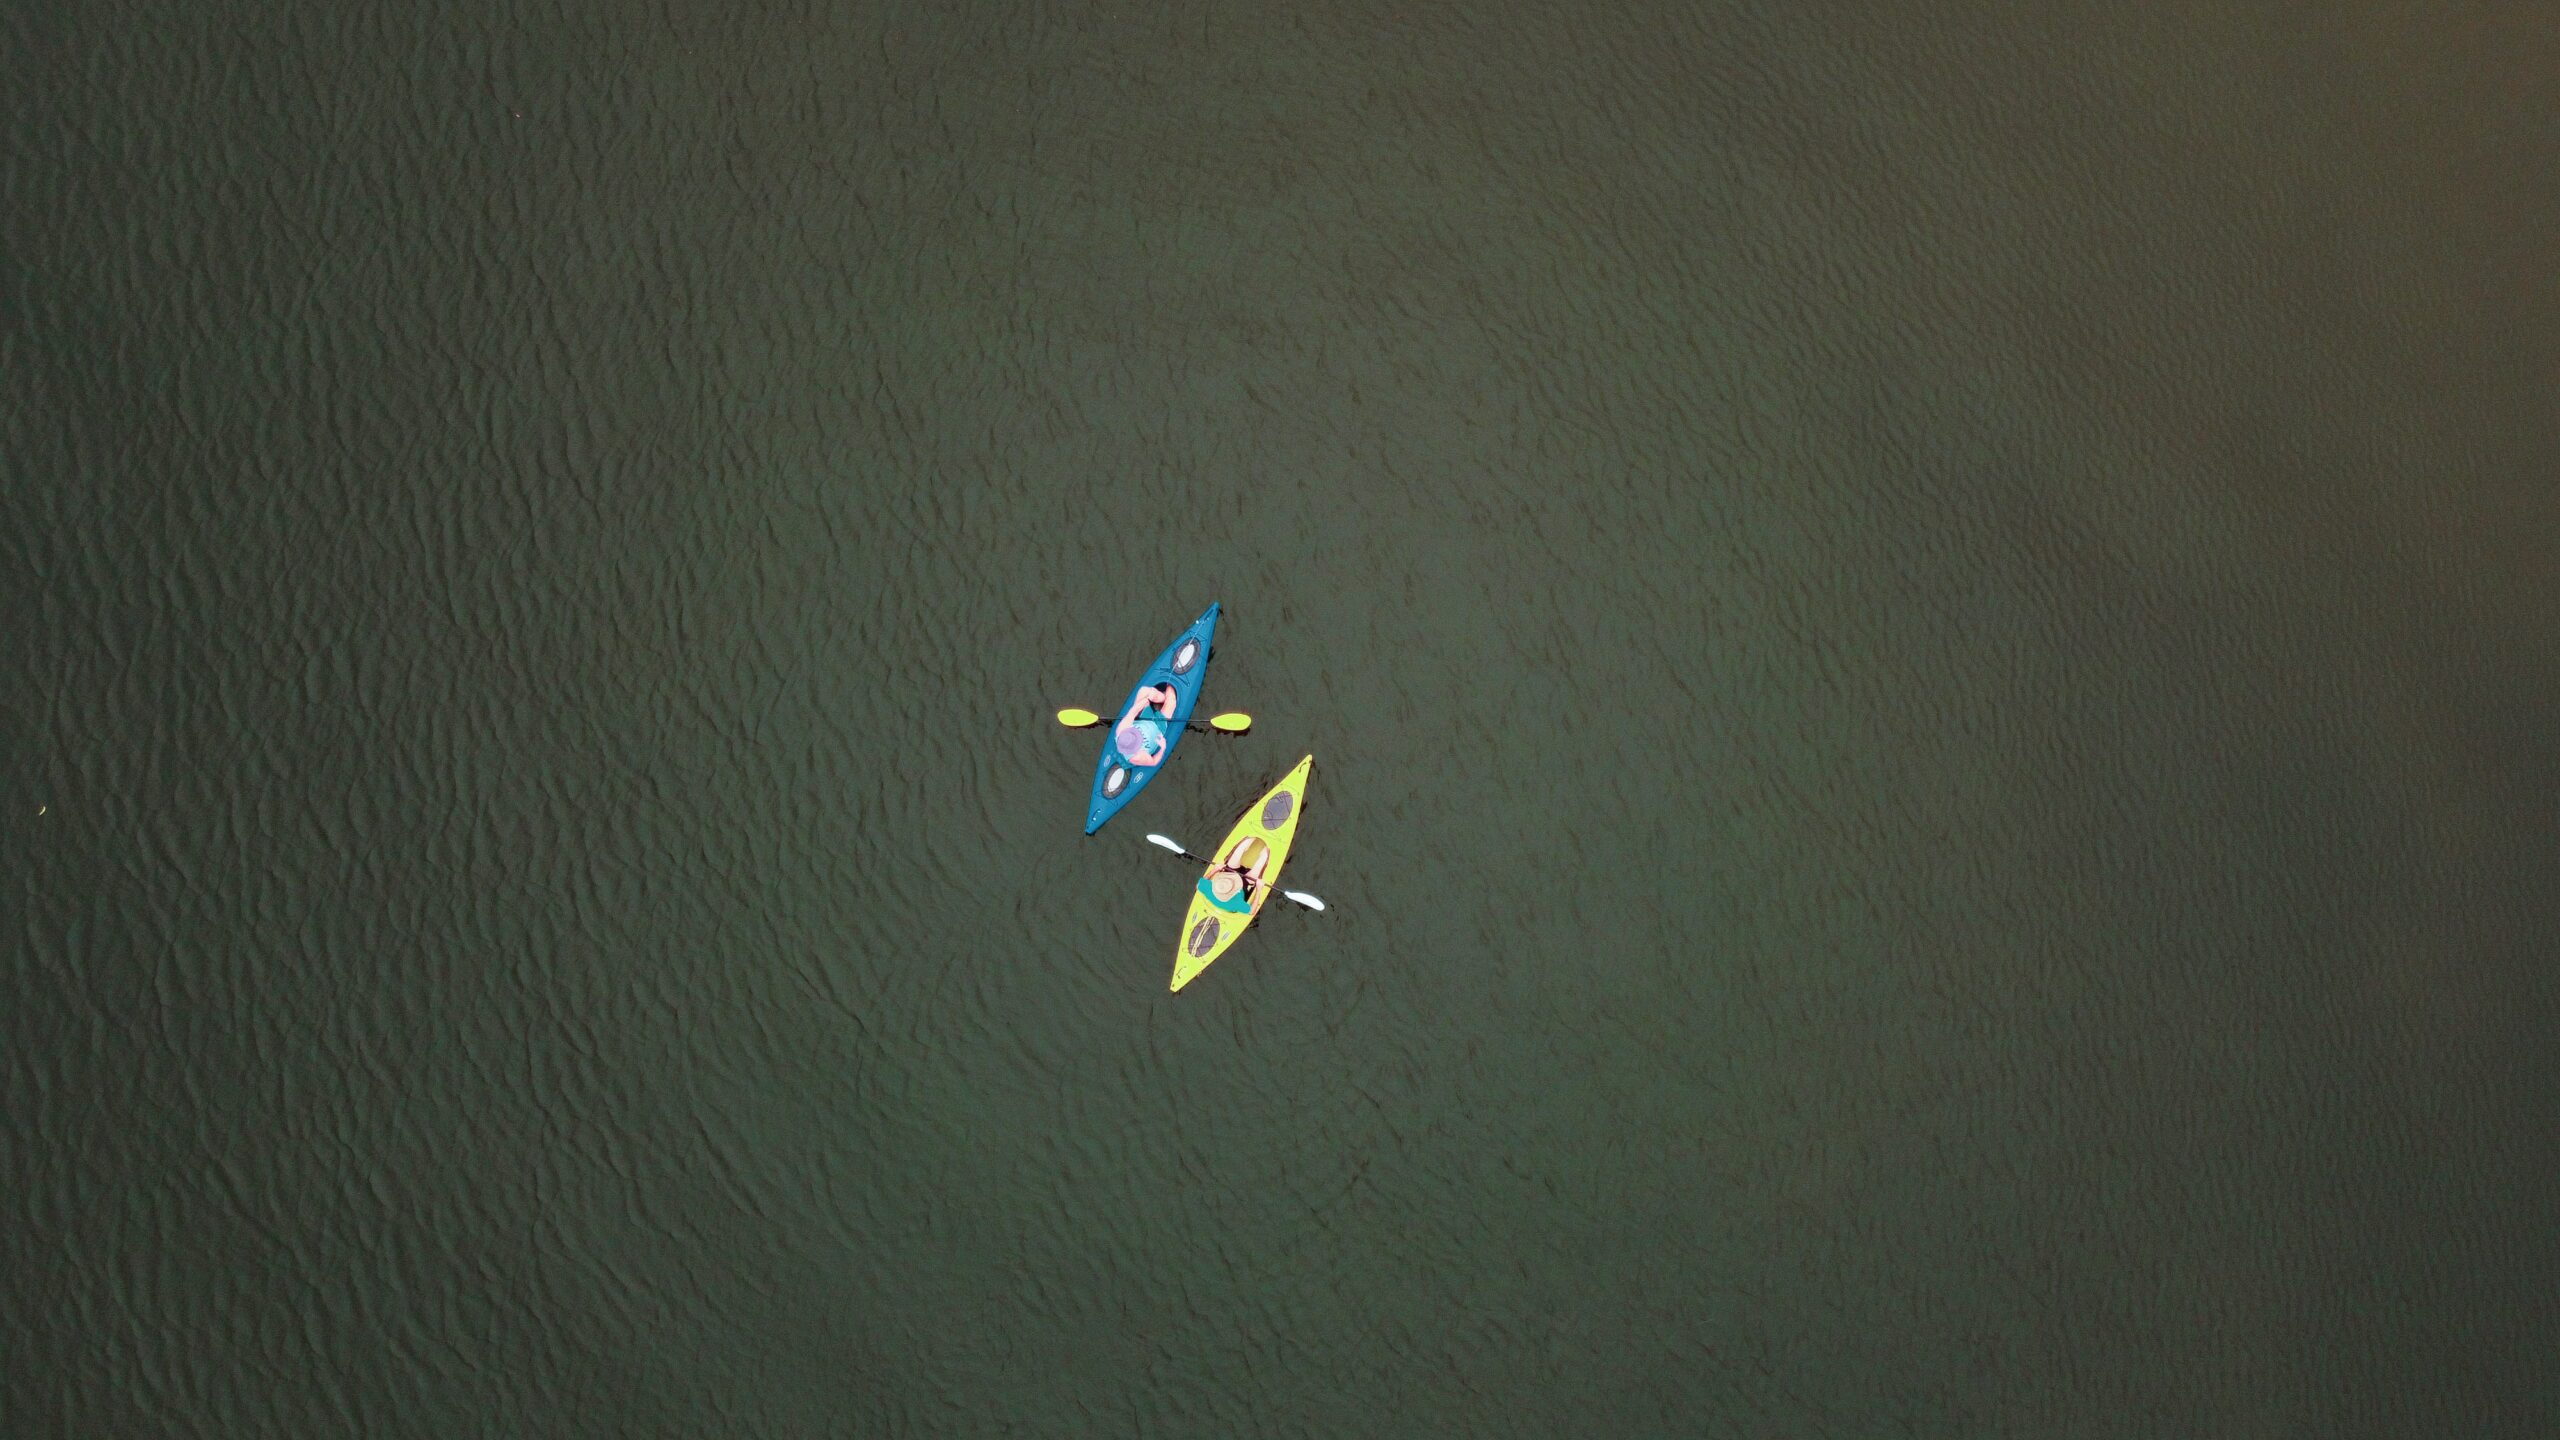 Youth Paddle-Boarding | June 8